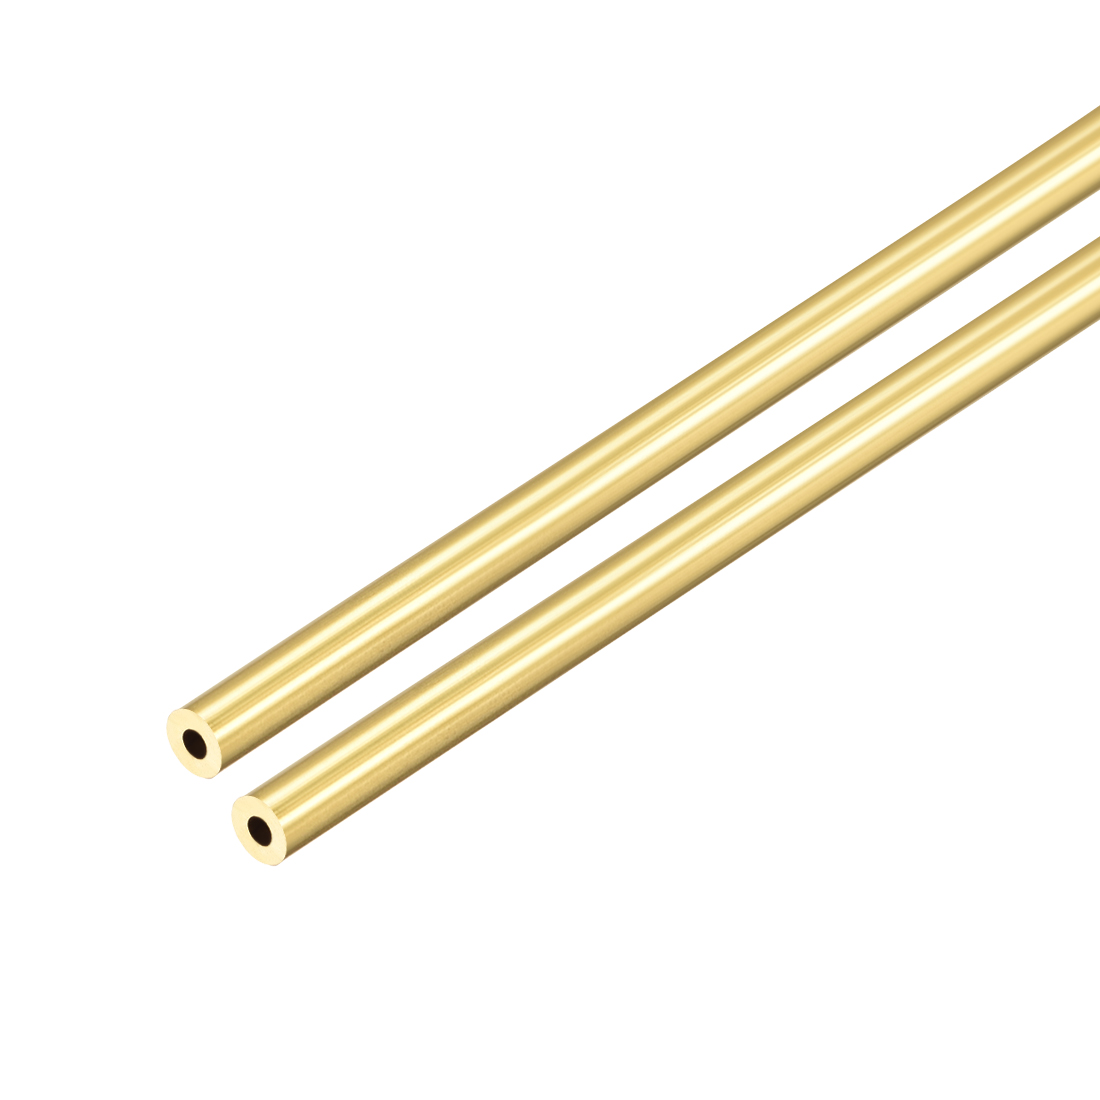 Uxcell Brass Round Tube 300mm Length 1mm Wall Thickness Seamless Straight Pipe Tubing 3.5mm OD 2Pcs